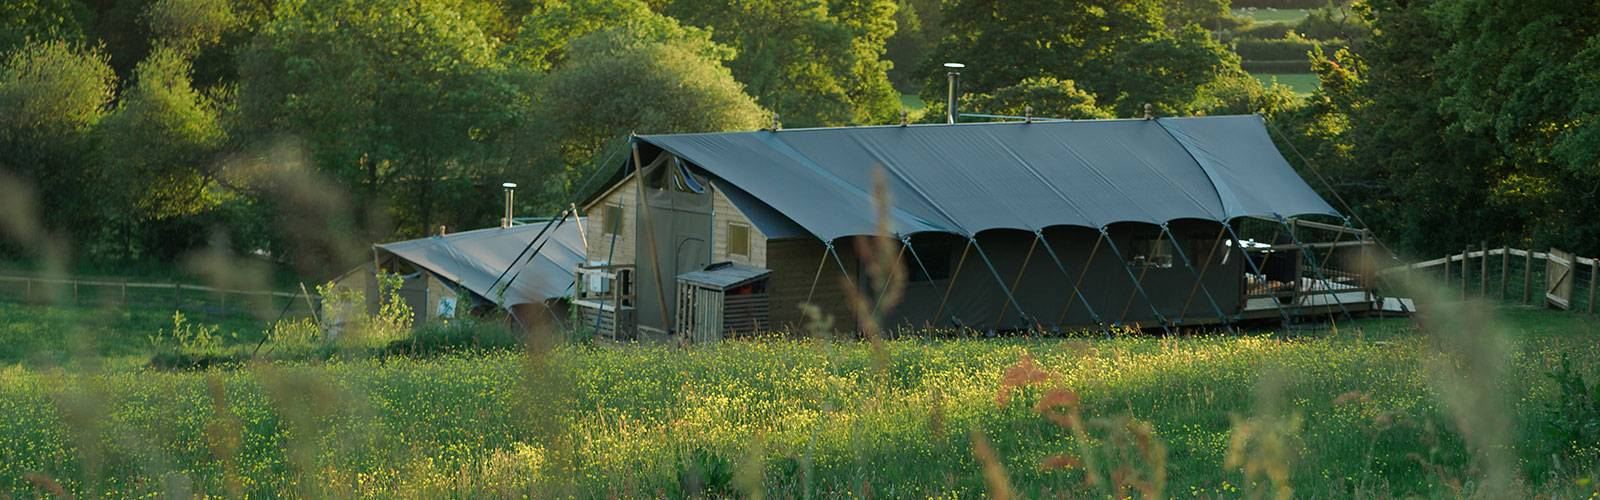 win a glorious glamping weekend